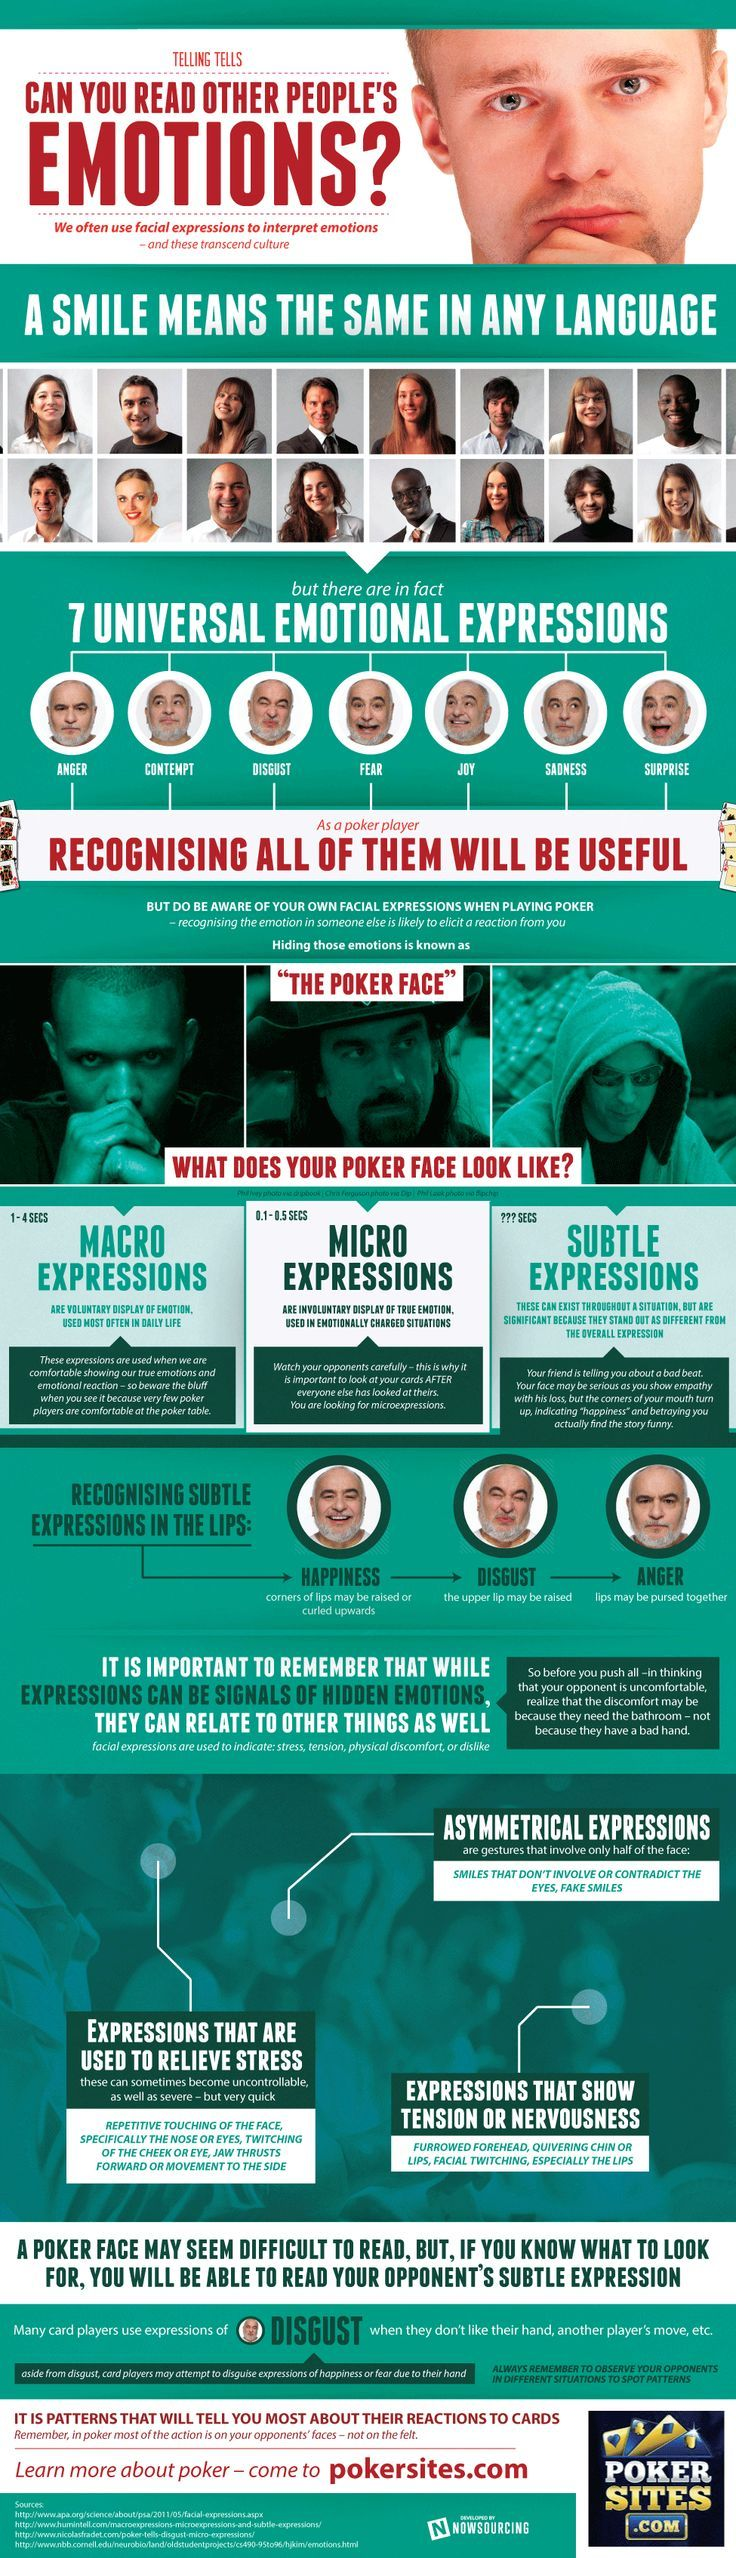 This infographic takes you through the basics of reading others' emotions through facial expressions.